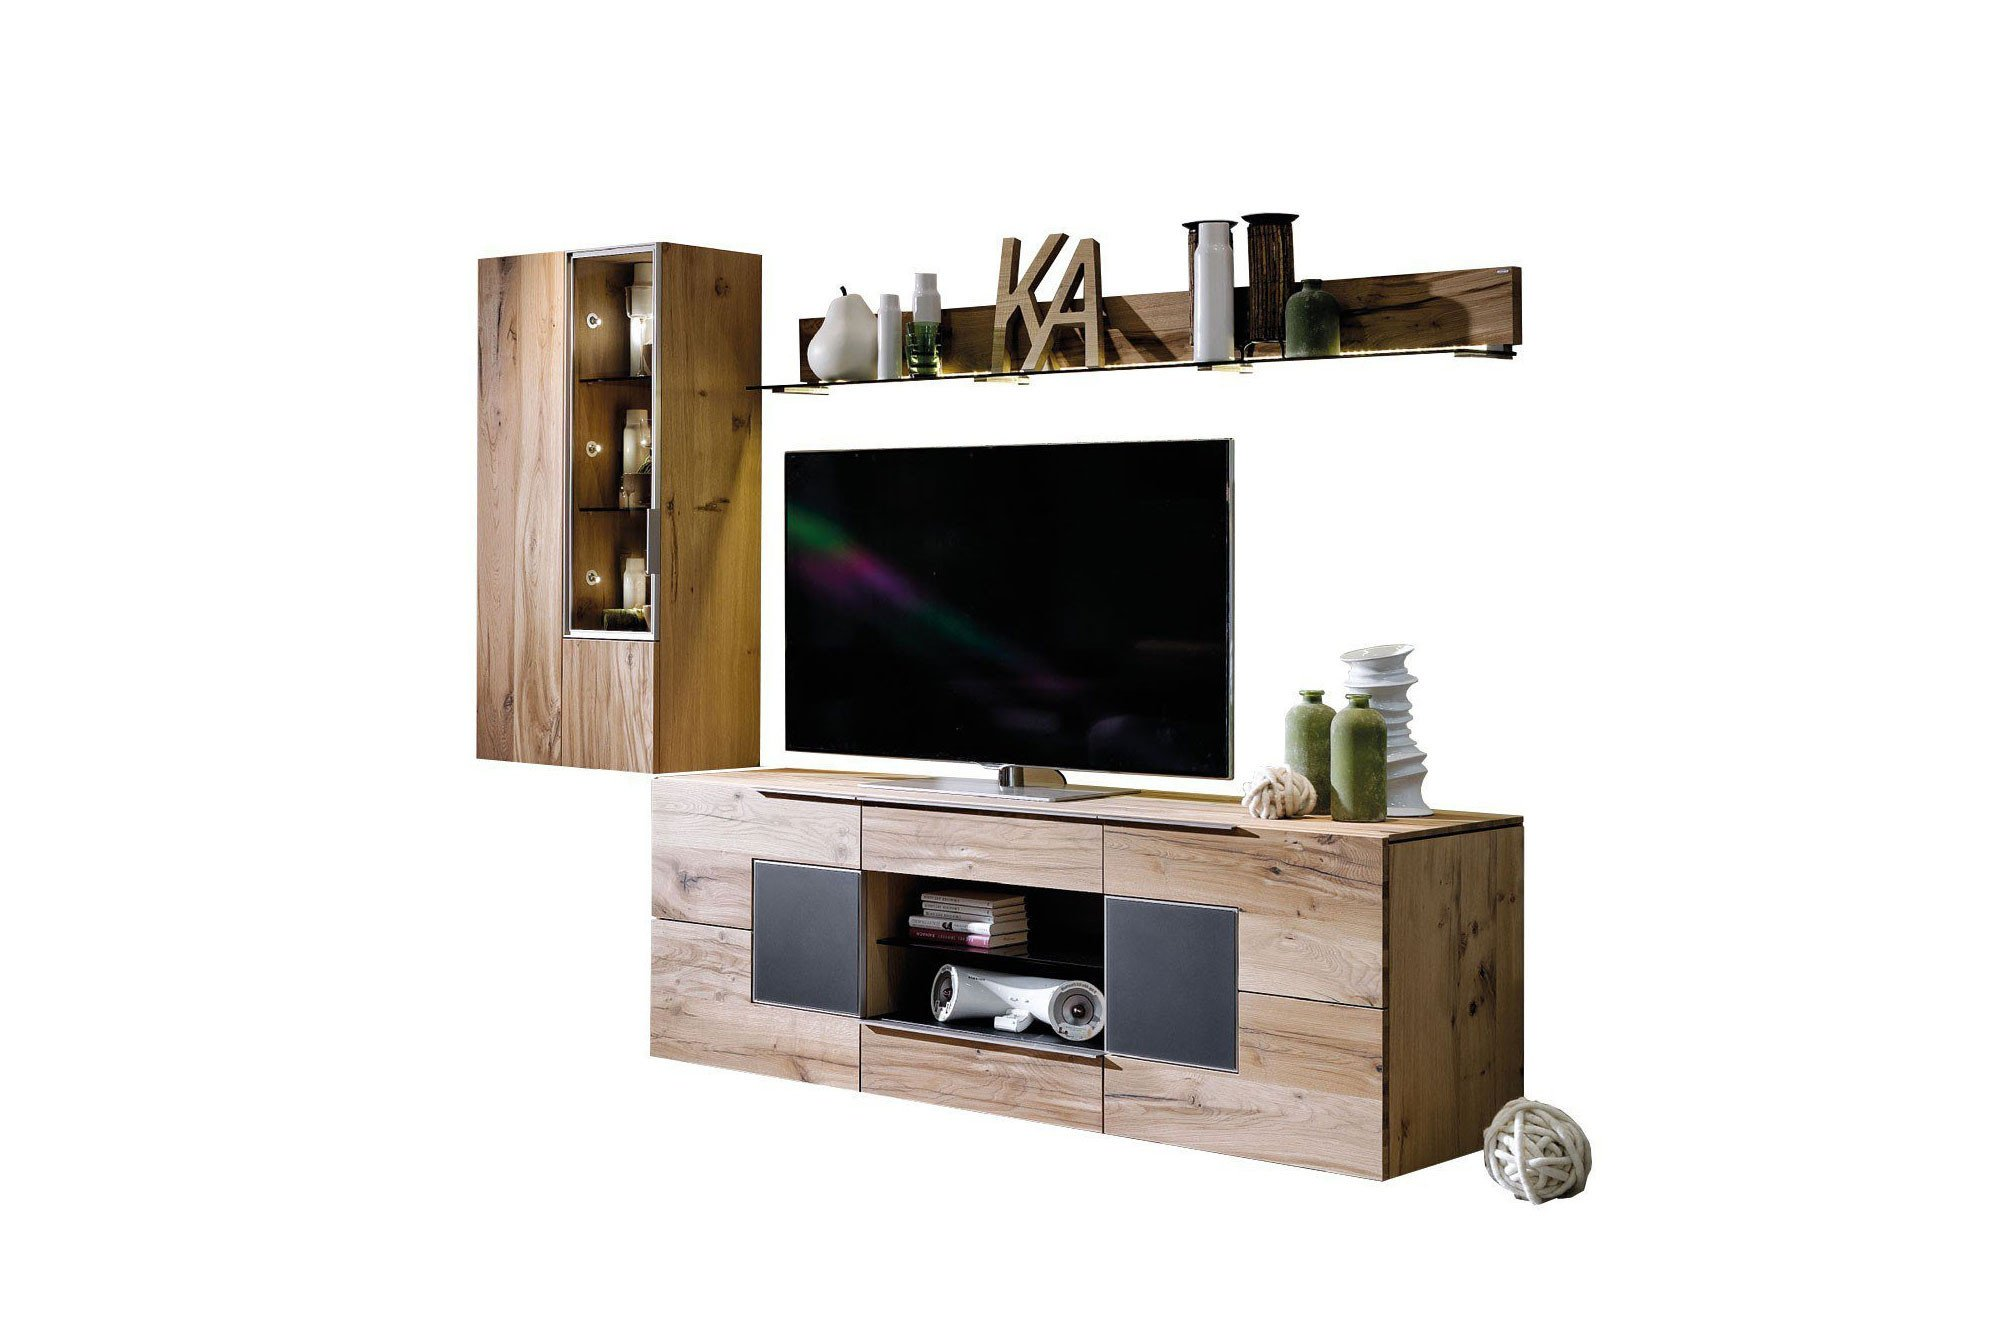 voglauer wohnwand v alpin 168 eiche altholz anthrazit m bel letz ihr online shop. Black Bedroom Furniture Sets. Home Design Ideas